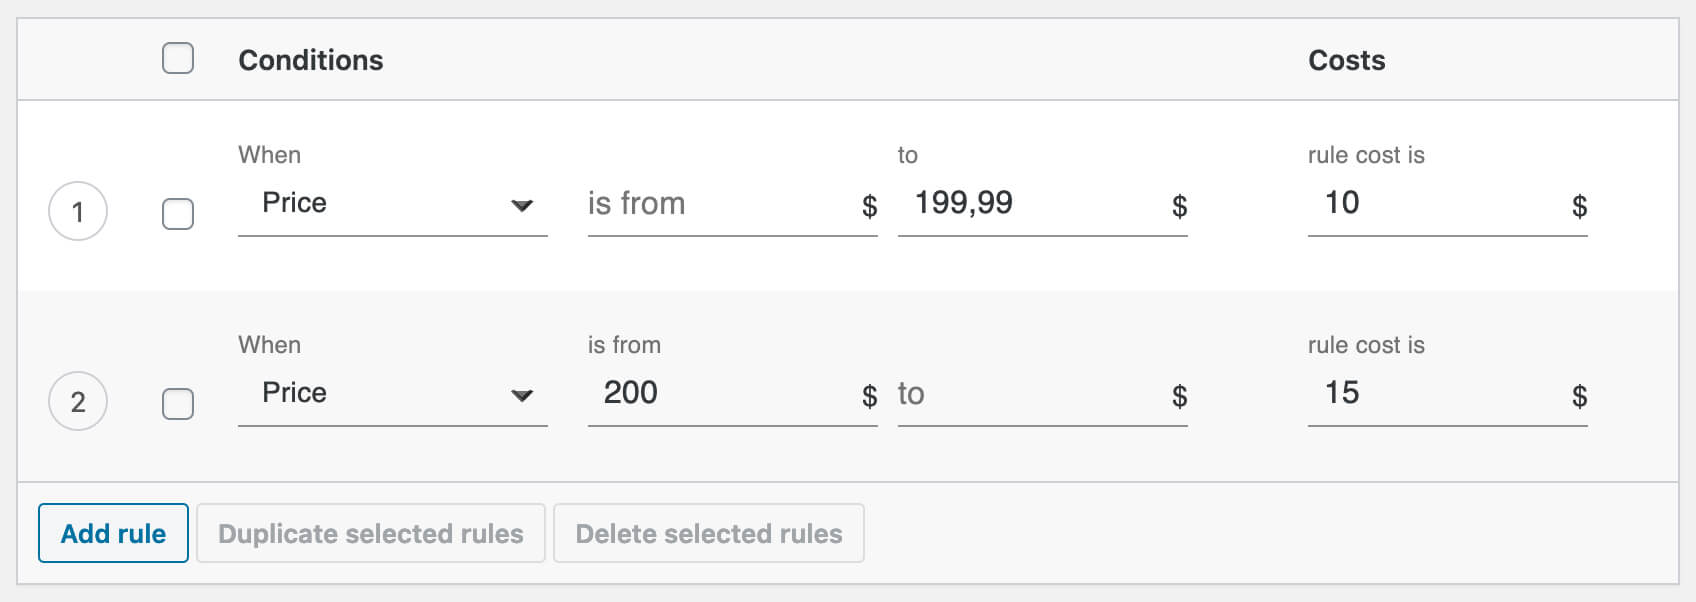 Shipping cost calculation rules based on price